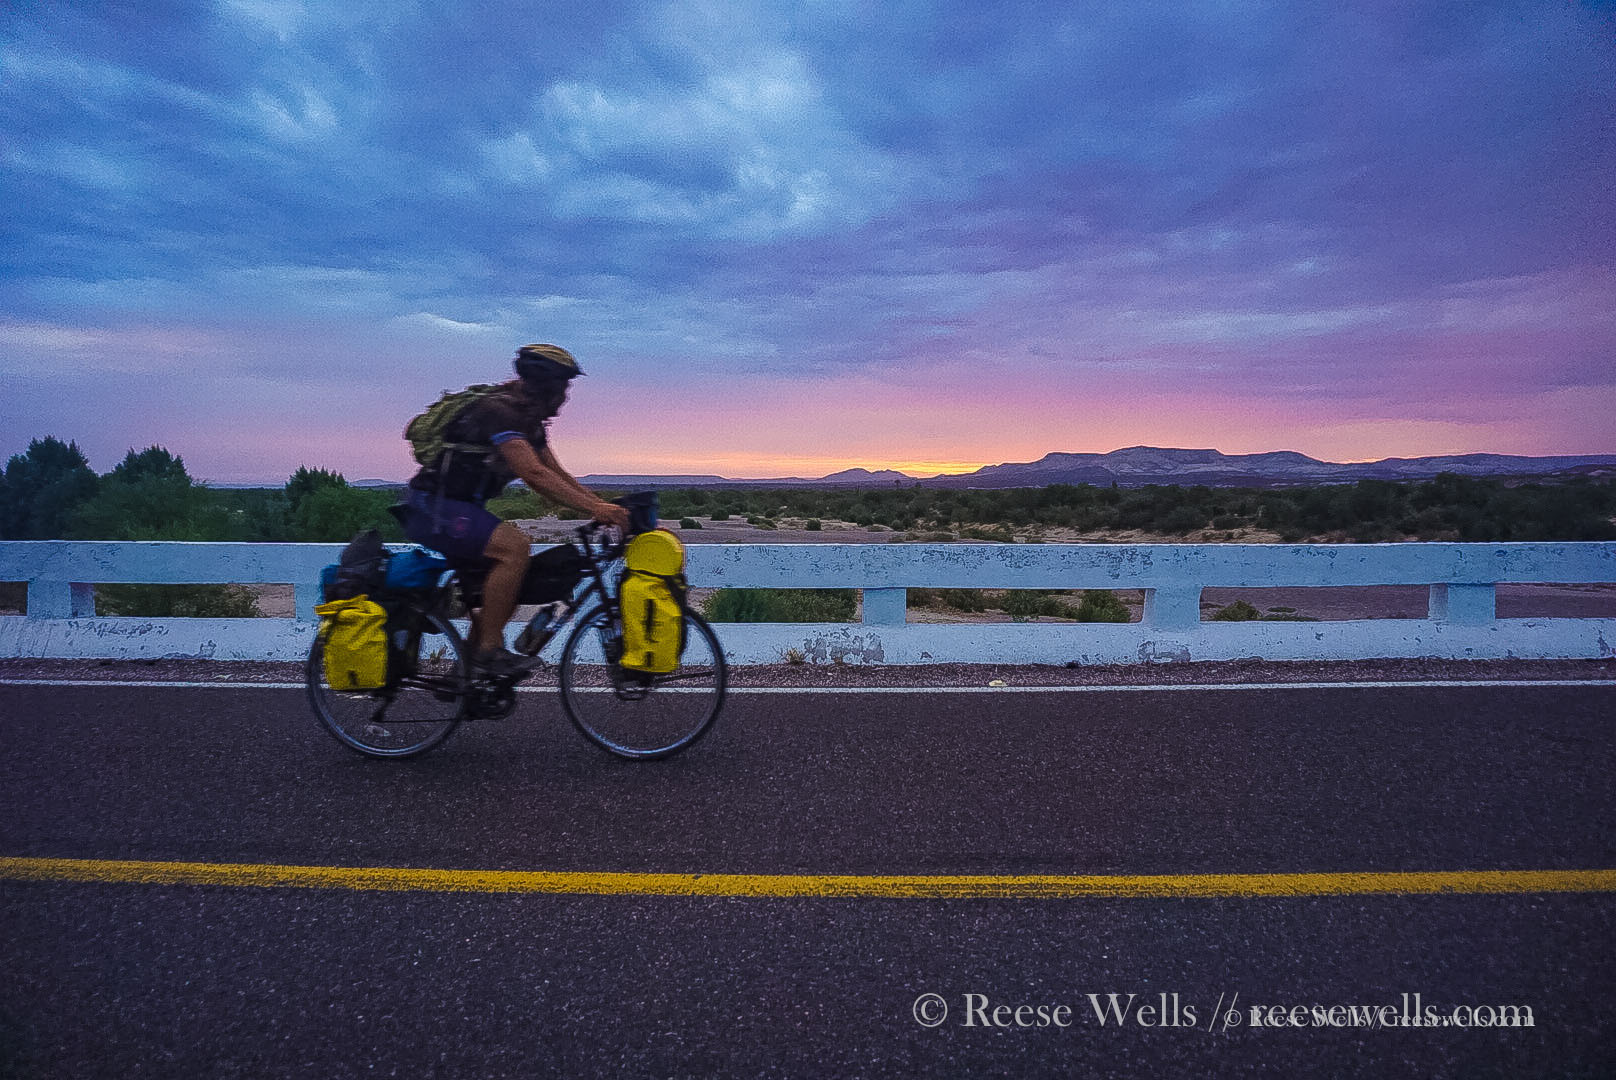 An epic sunrise on our ride into La Paz. This is one of the many reasons why we get up so early.